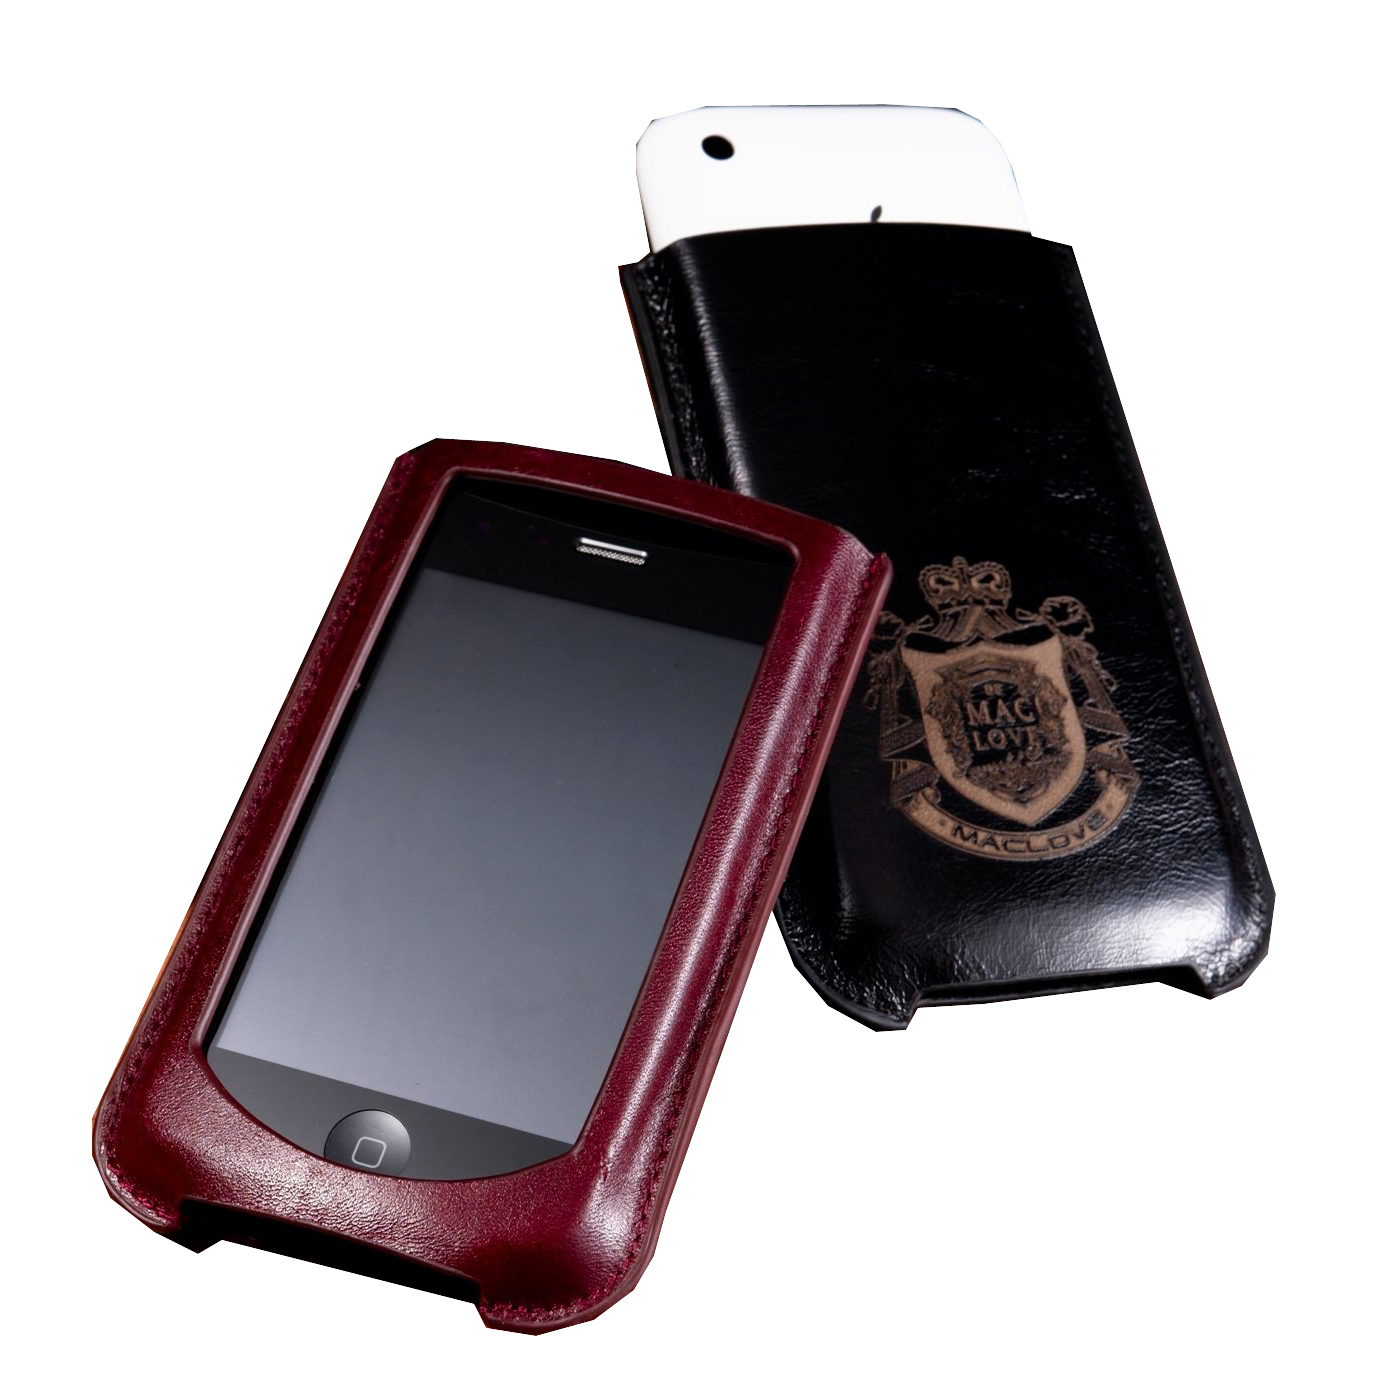 для Iphone 4 MacLove Leather Case Lucca Black for iPhone 4